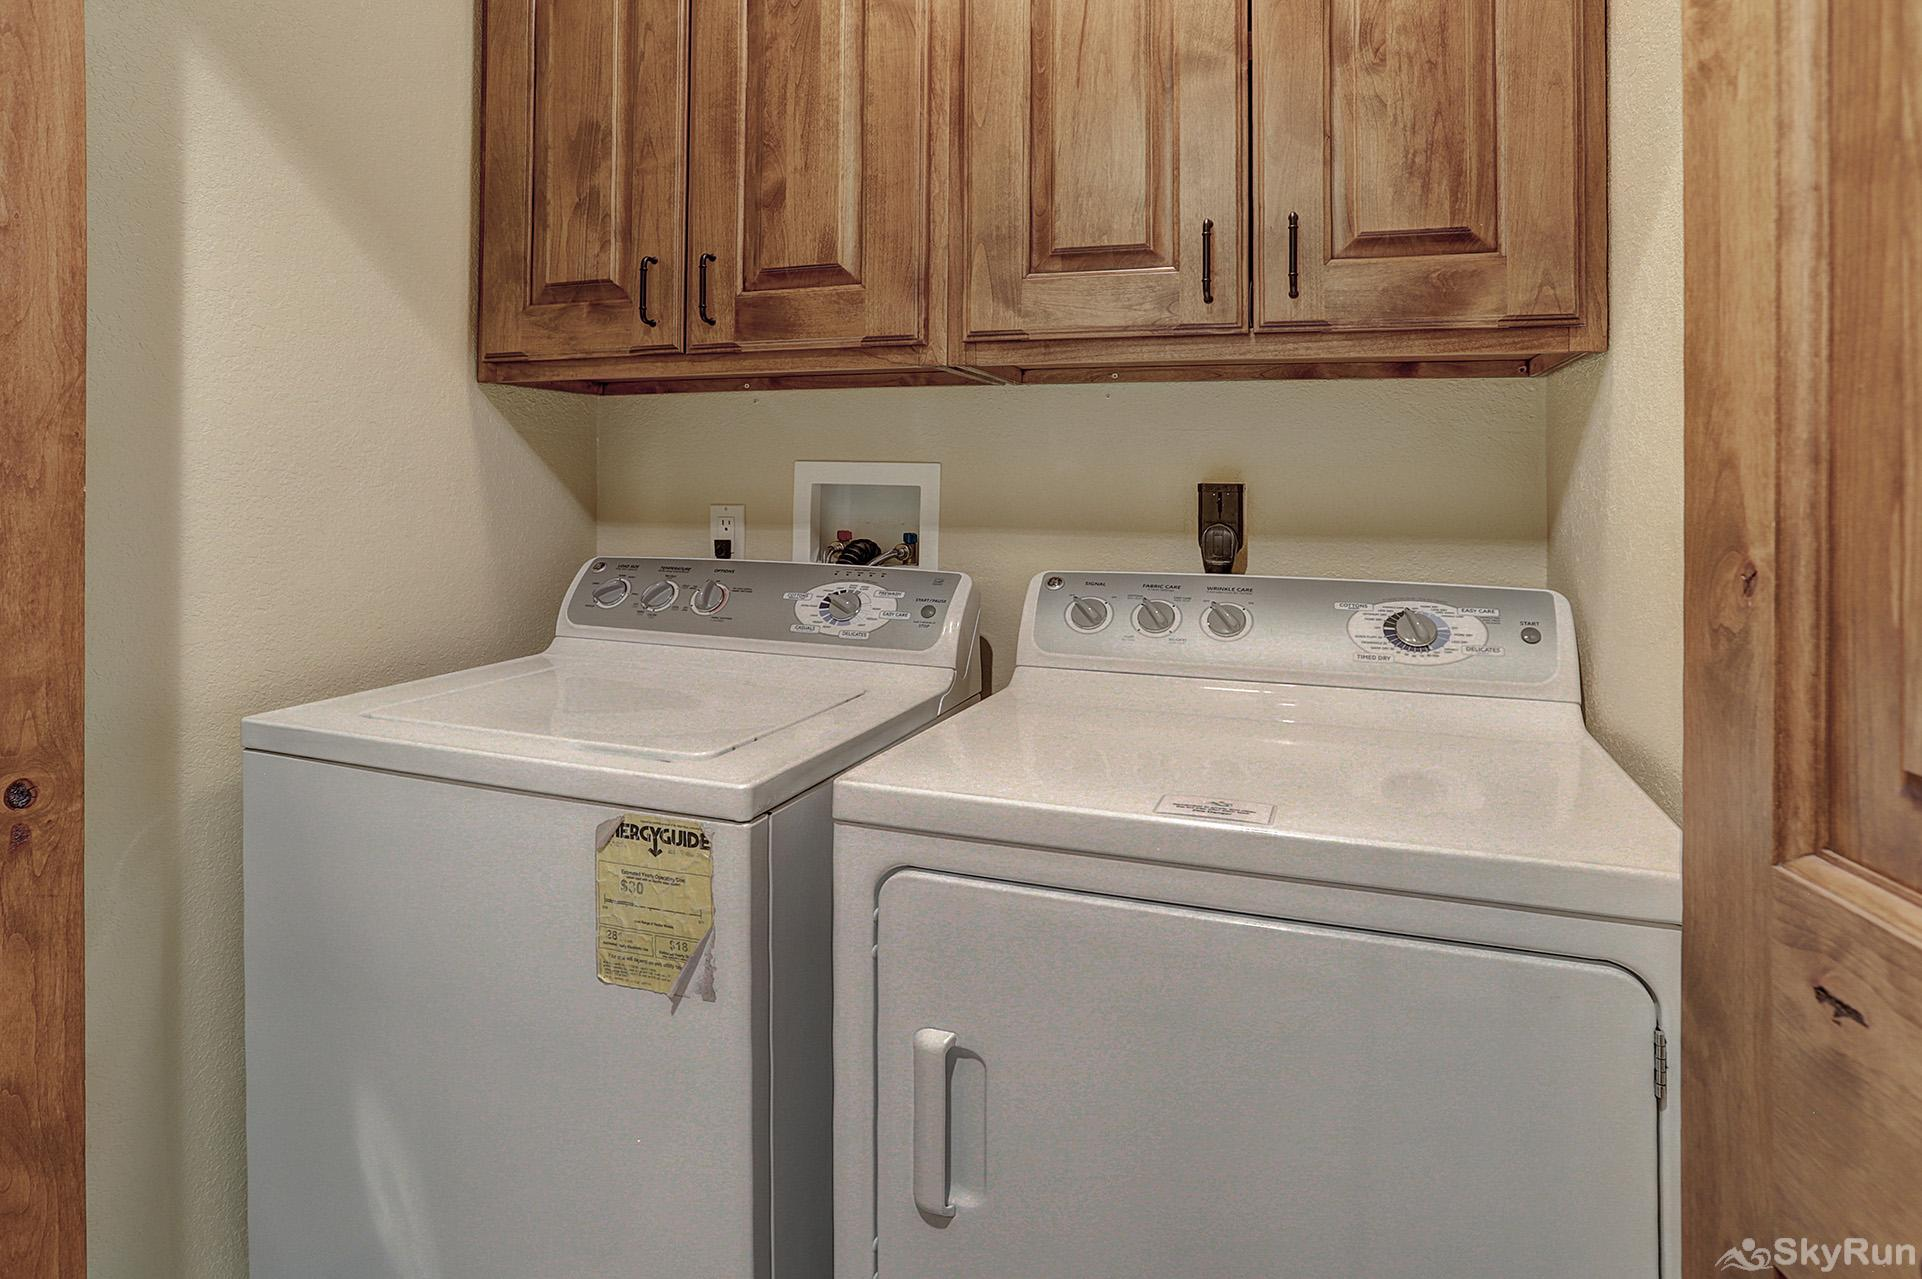 Happy Trails Convenient in-home washer and dryer